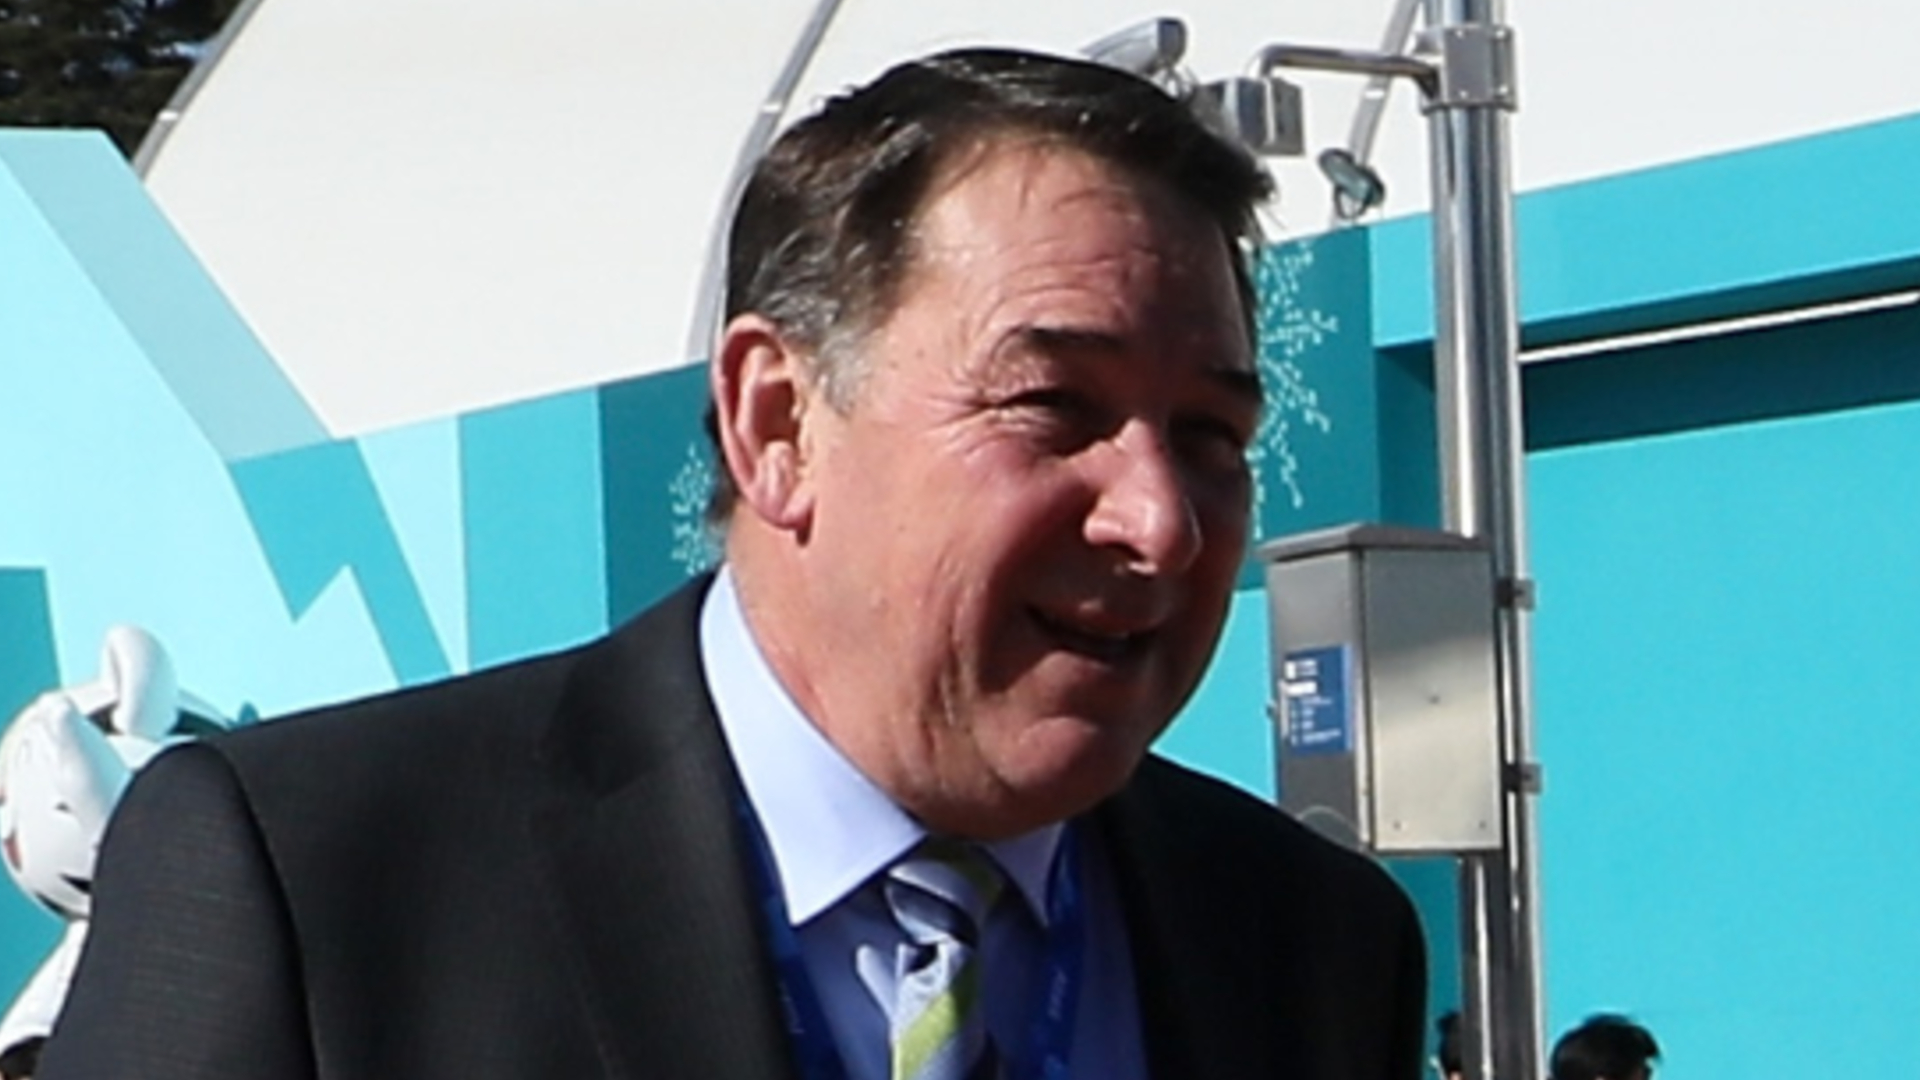 Mike Milbury to 'step away' from NBC NHL role following sexist comment 1